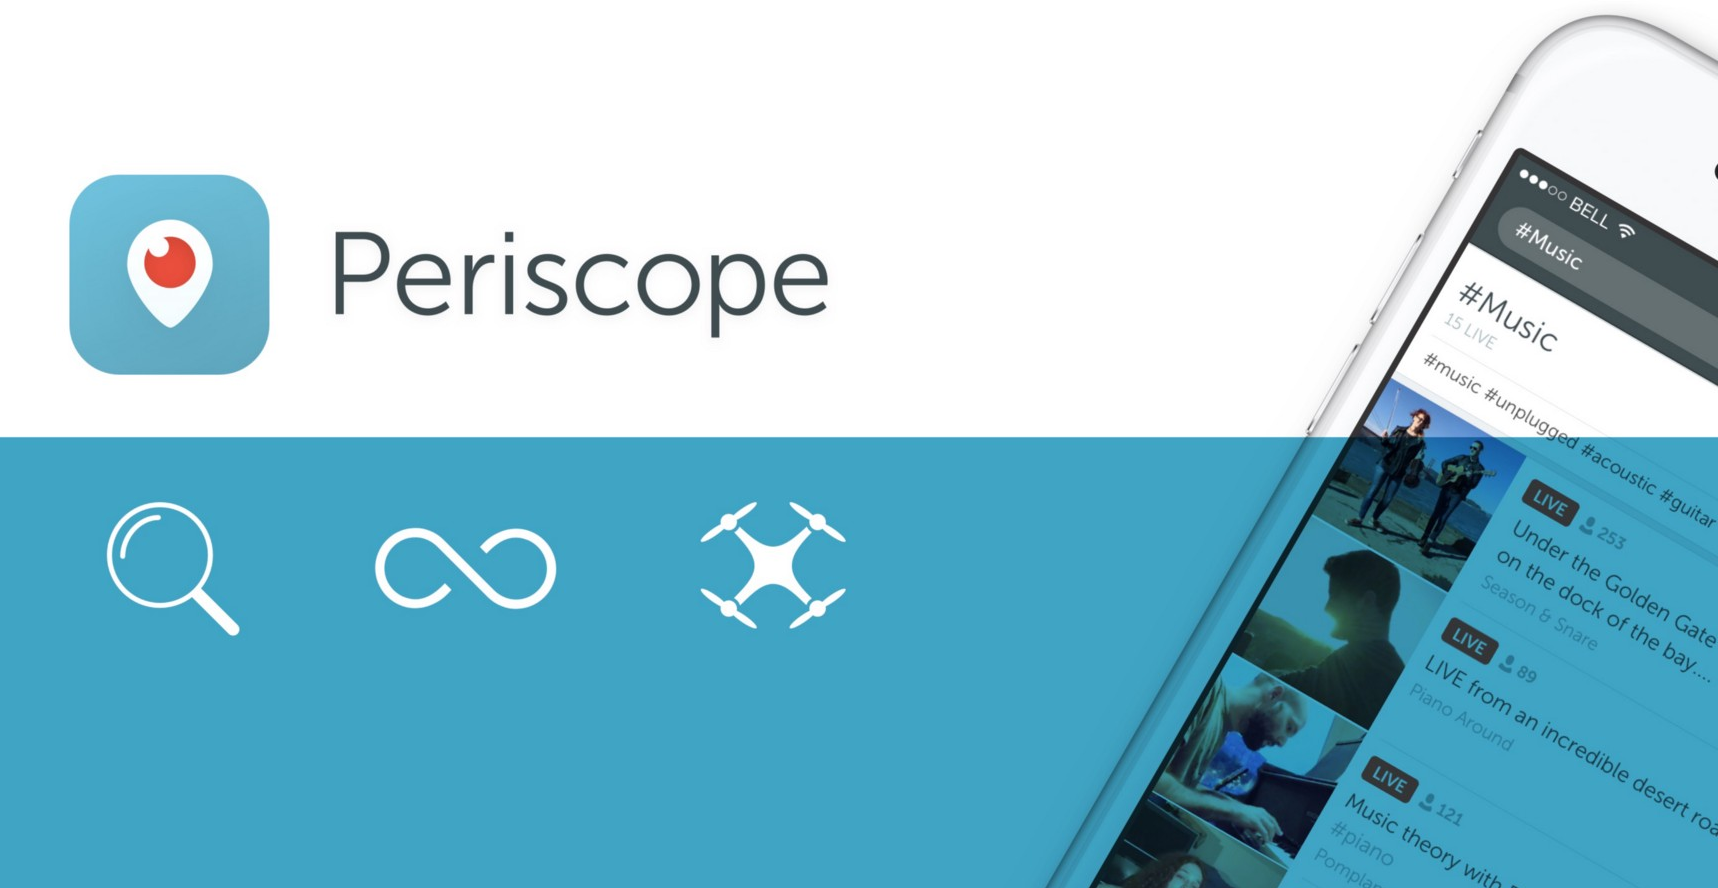 Periscope Adds Permanent Streams, Hashtags and Drone Support